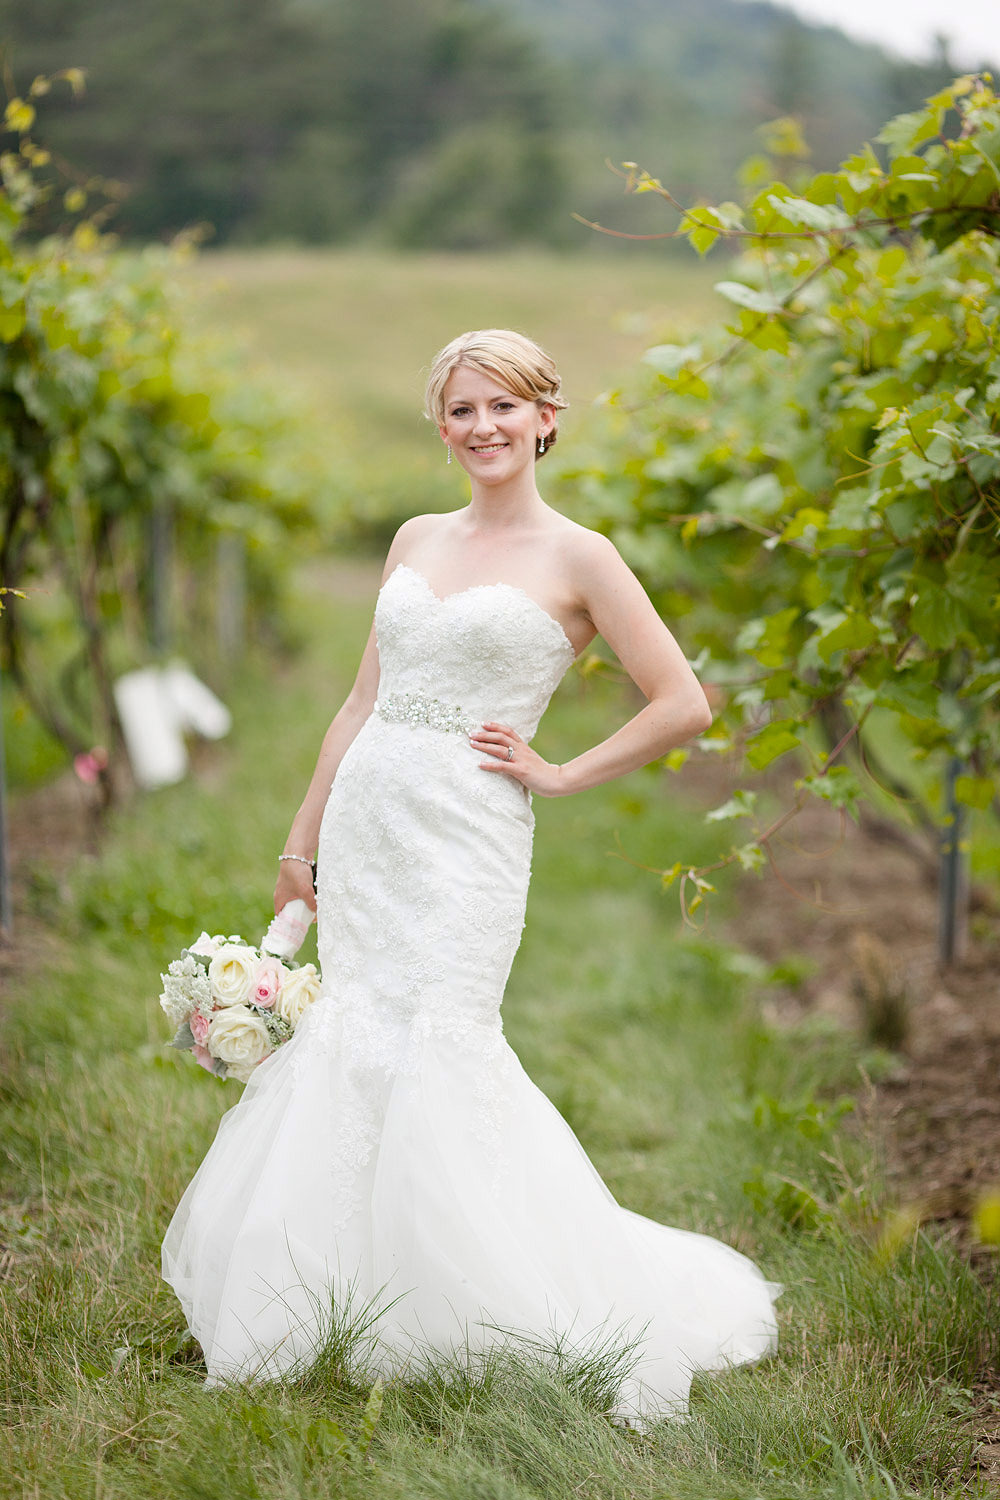 Photo of a bride posing in a vineyard after a summer wedding at the Barn at Boyden Farm by Vermont wedding photographer Stina Booth